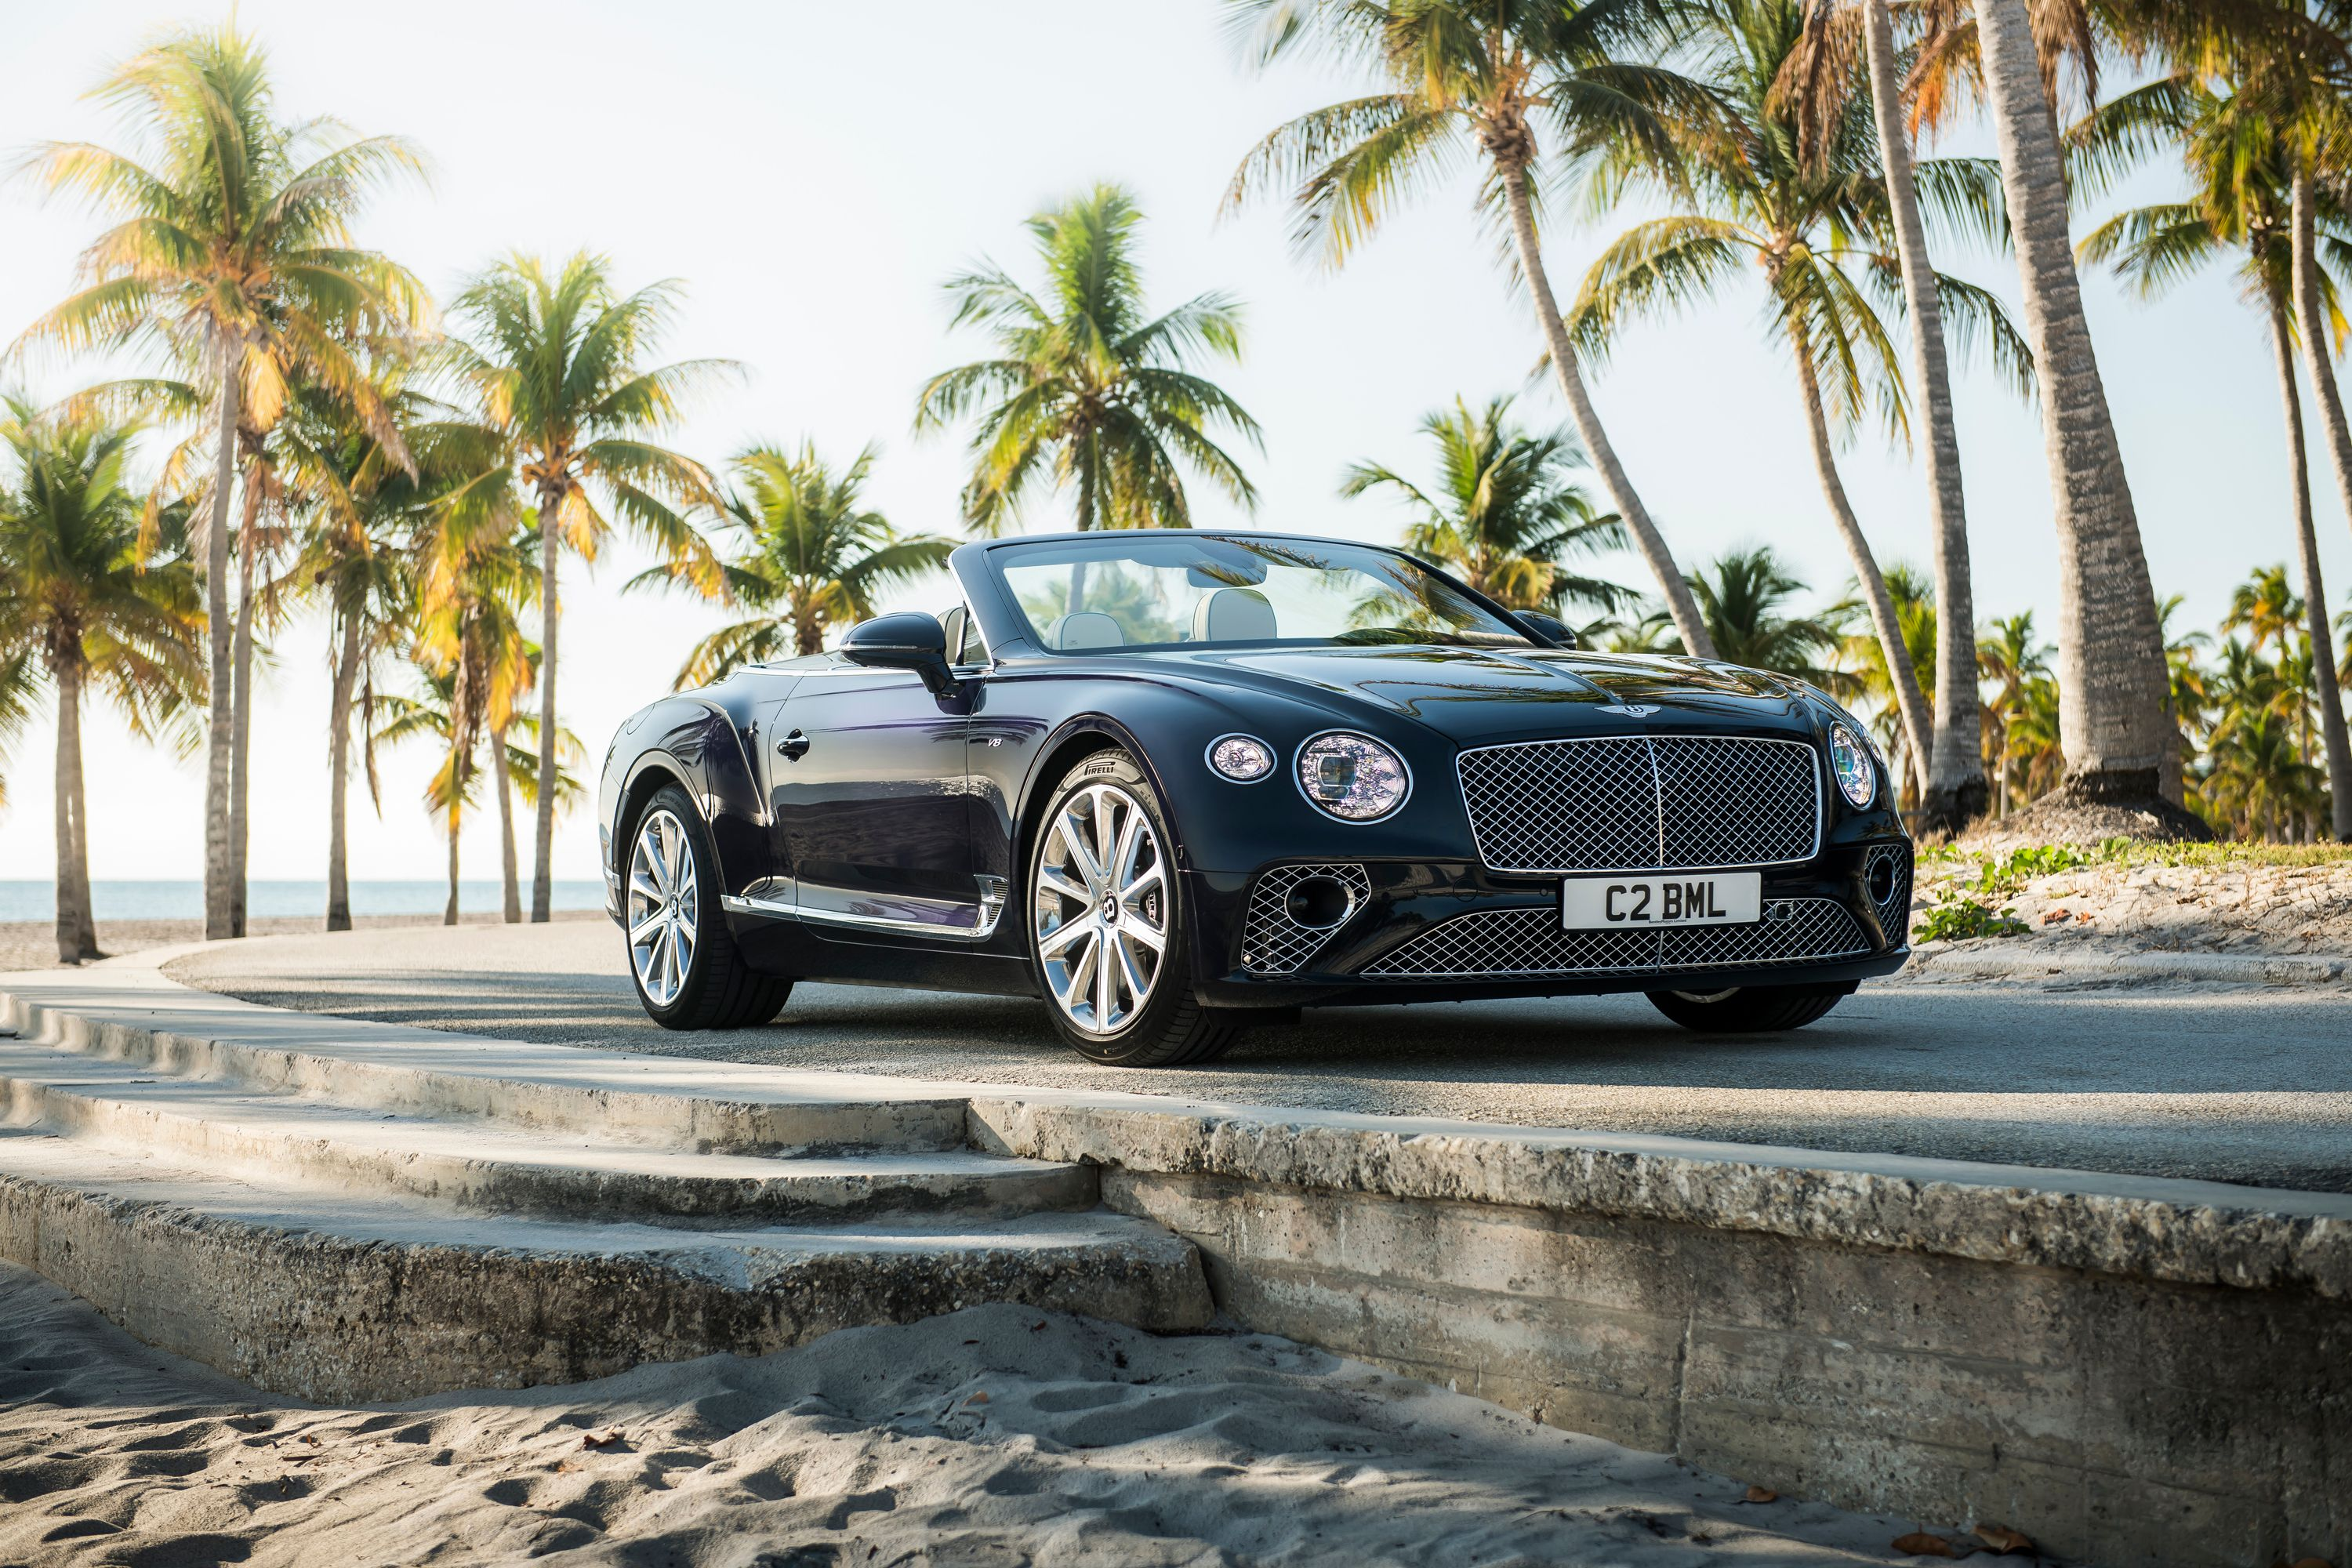 2021 Bentley Continental GT Review, Pricing, And Specs - NewsOpener